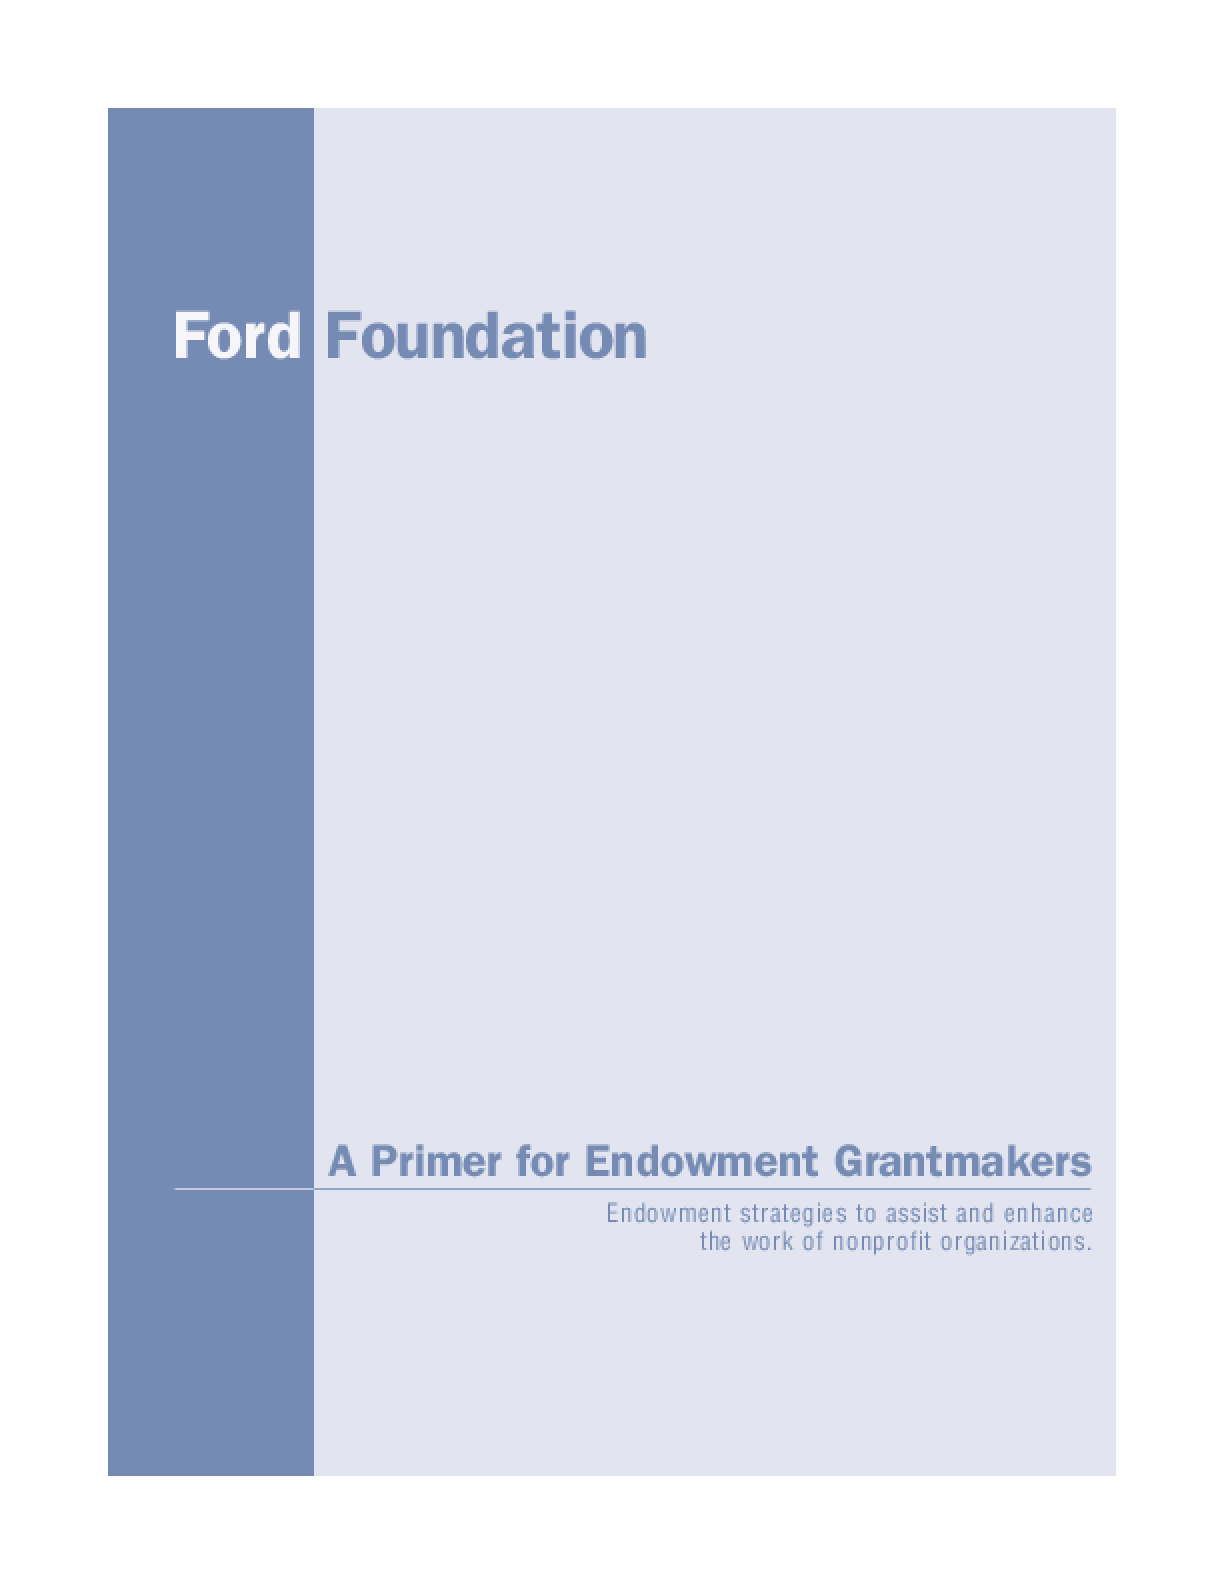 A Primer for Endowment Grantmakers